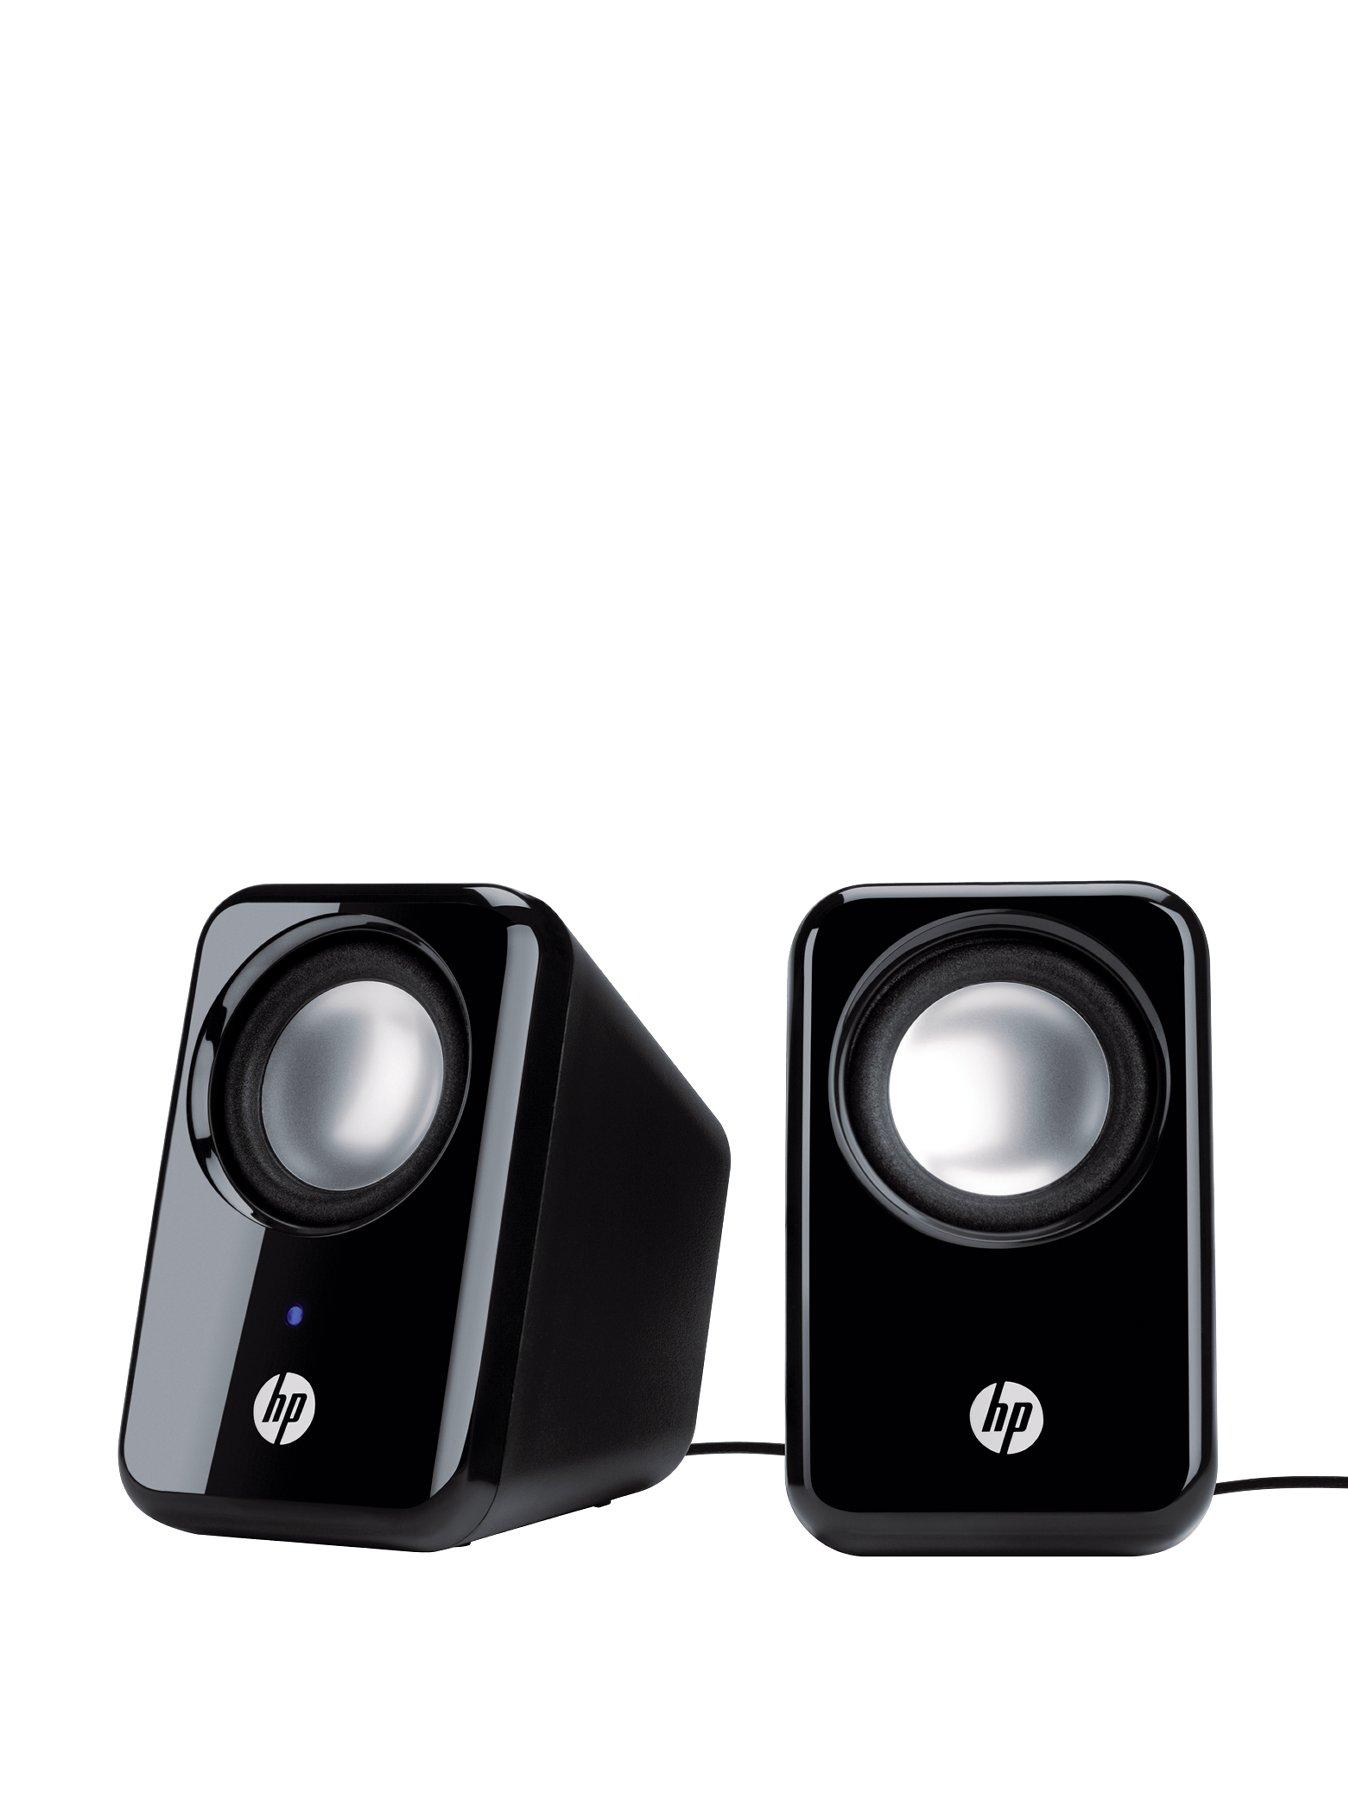 HP Multimedia Speakers 2.0 - Black